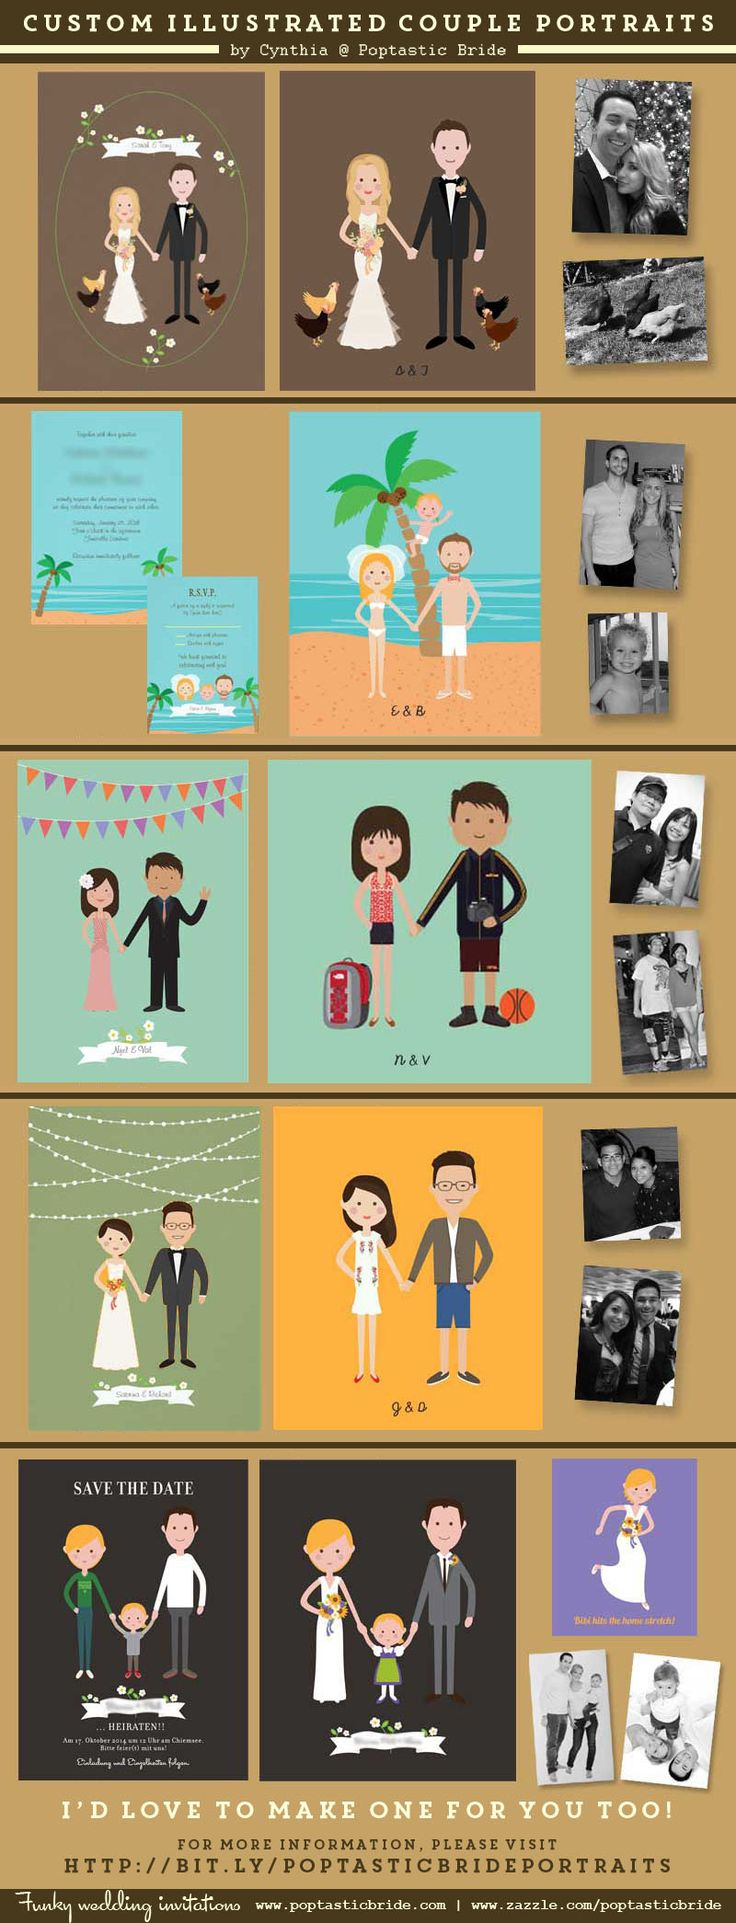 Custom illustrated couple portraits | cute wedding portrait illustration | cartoon couple wedding illustrations by Poptastic Bride. These are some of the portraits for real couples that I've done. Please click on the image for more information.